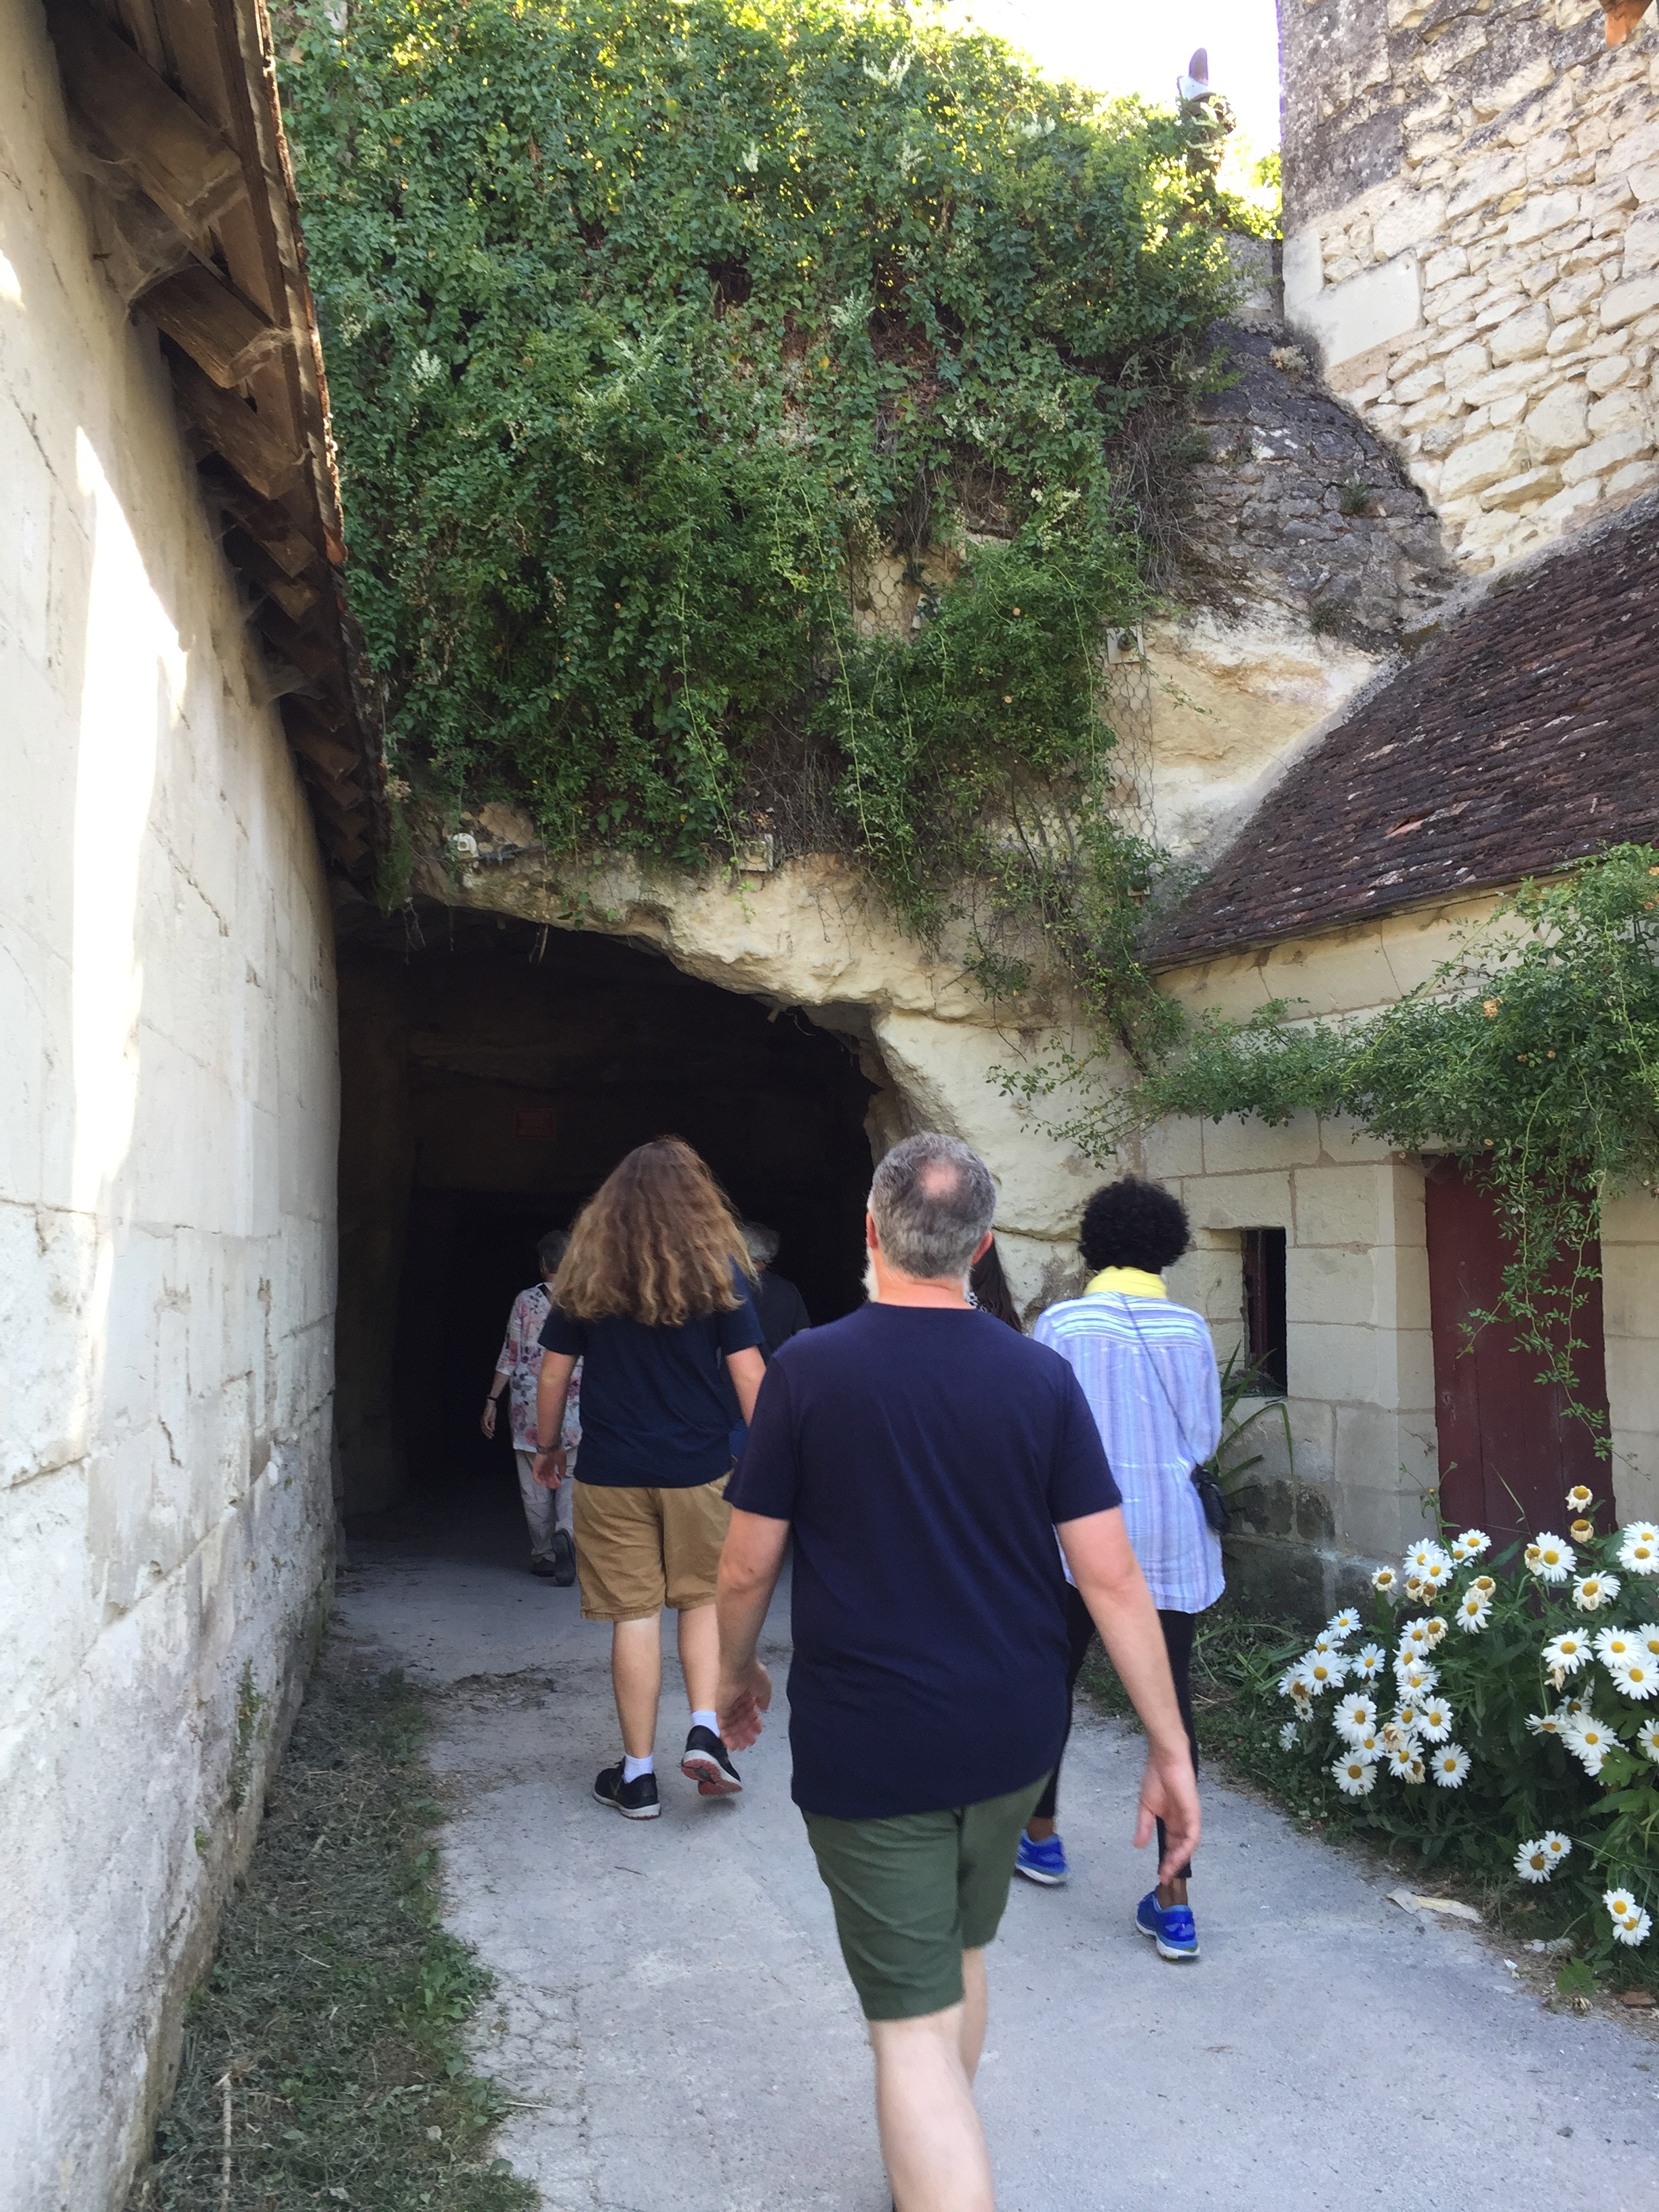 Entering Les Caves de Roche, the mushroom cave. No sign, no gate, no safety equipment required. We were told to keep up so we didn't get lost and duck under low ceilings.